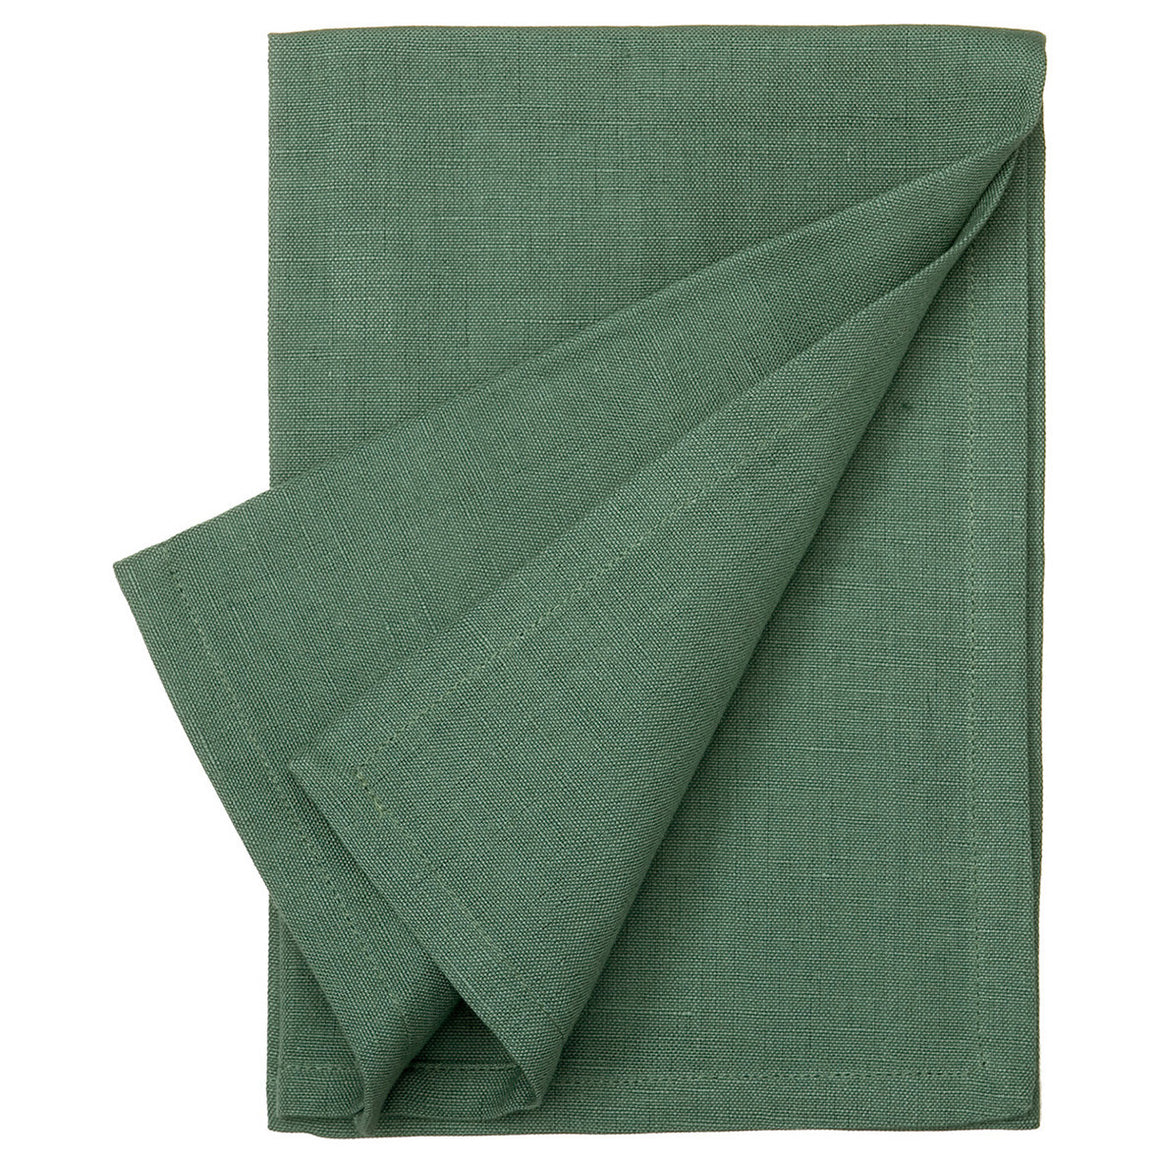 Cotton Linen Union Napkins in Dark Moss Green